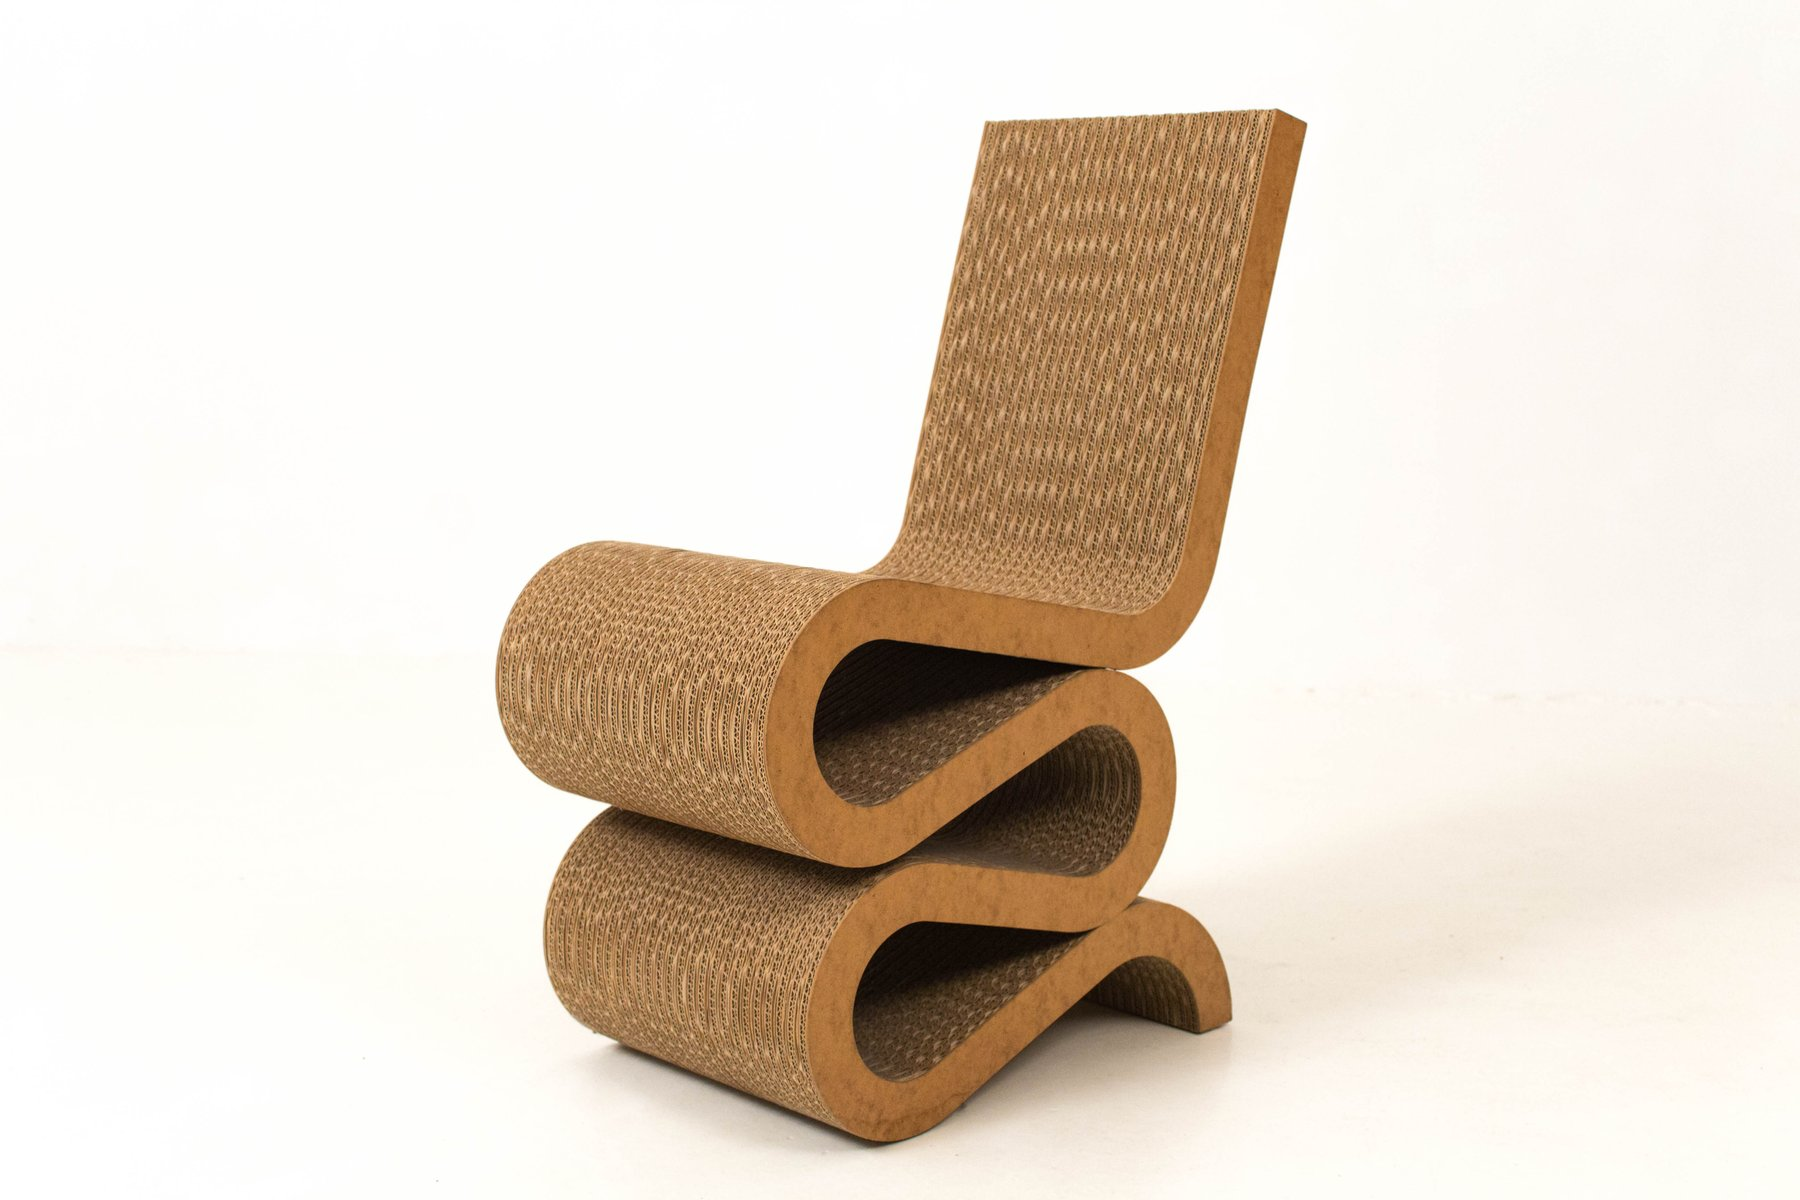 frank gehry chair cheap modern rocking wiggle side by for vitra 1992 sale